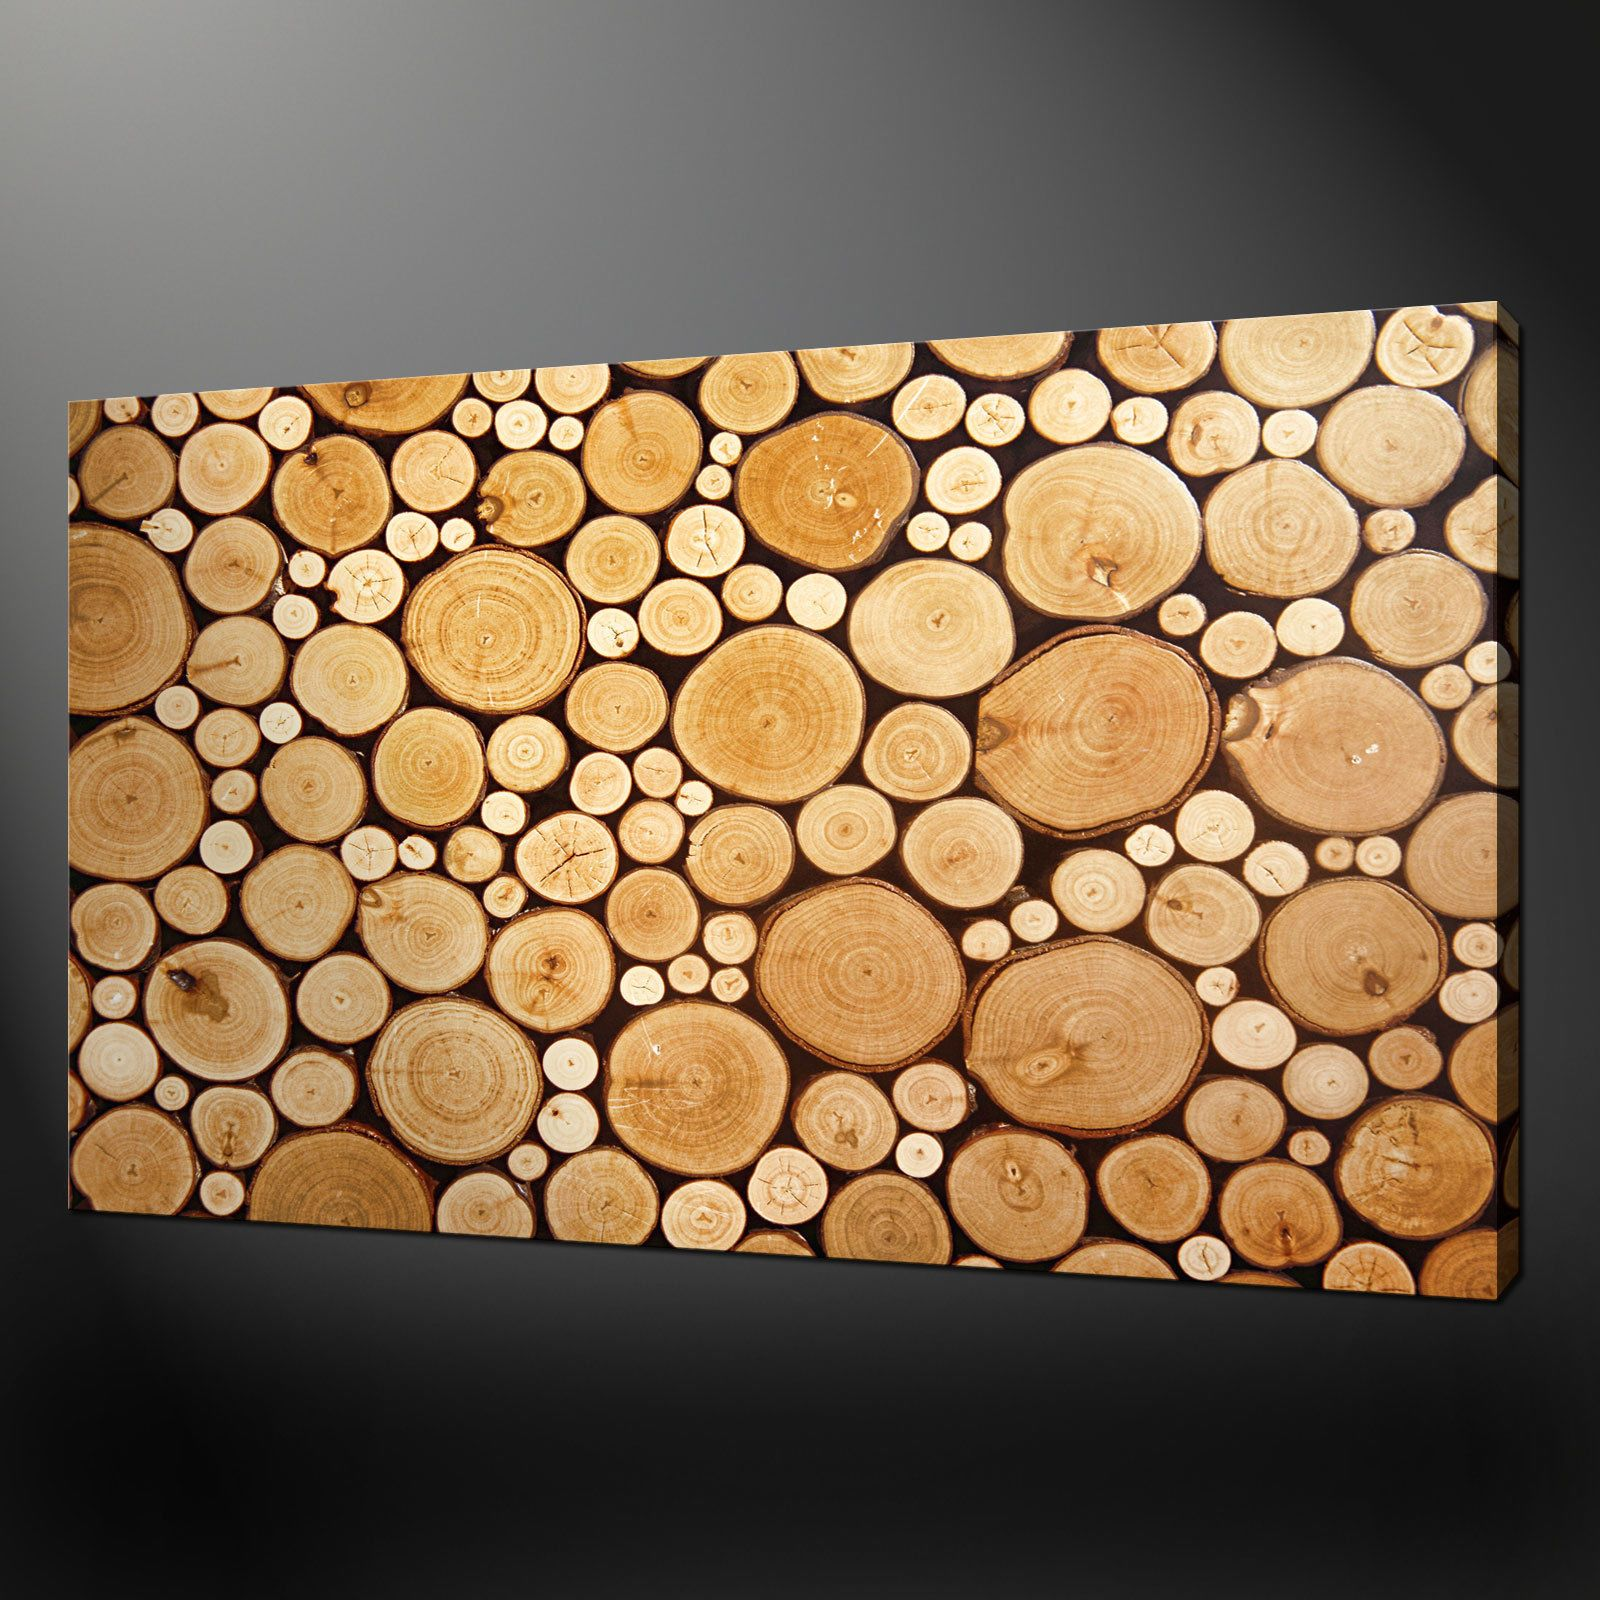 noble wood logs box canvas print wall art design free n wall art design free uk - Wall Art Design